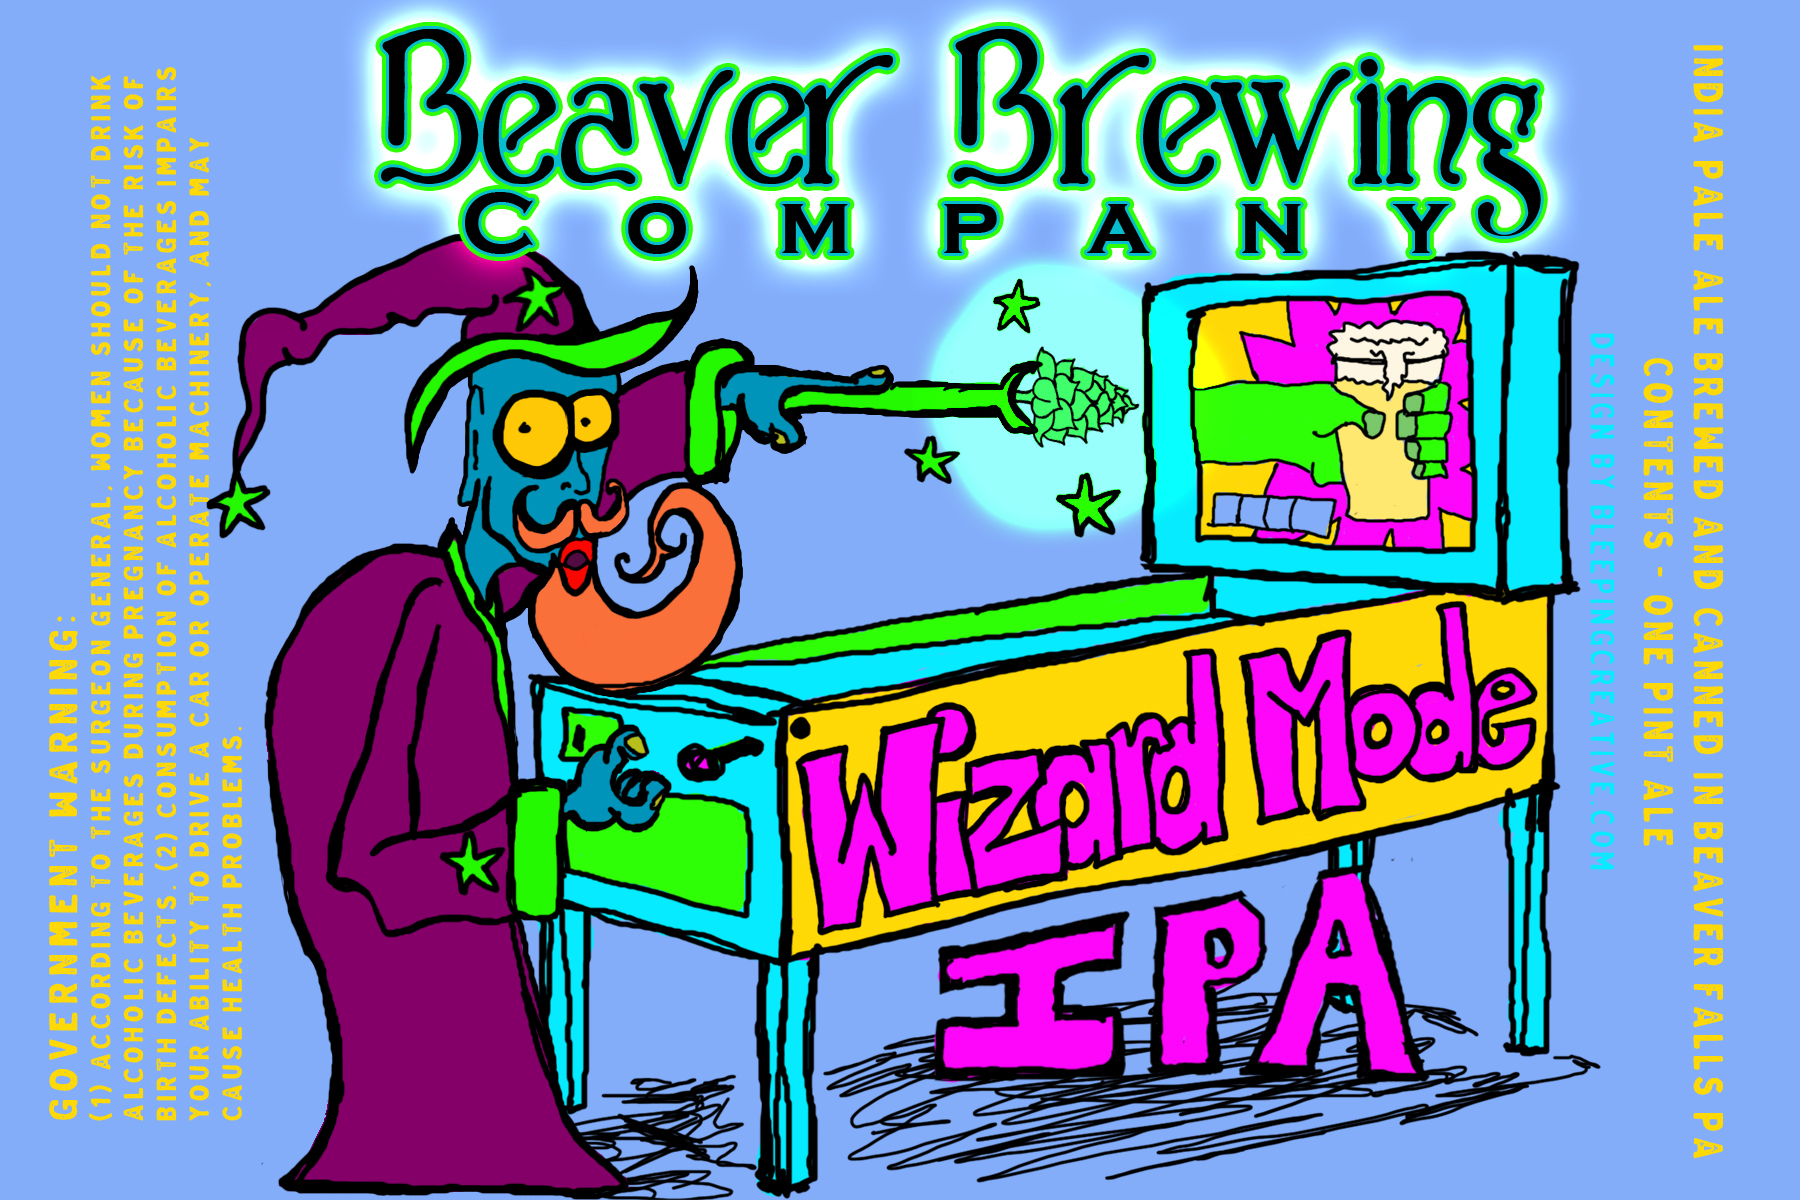 BeaverBrewing_WizardModeIPA-03.jpg